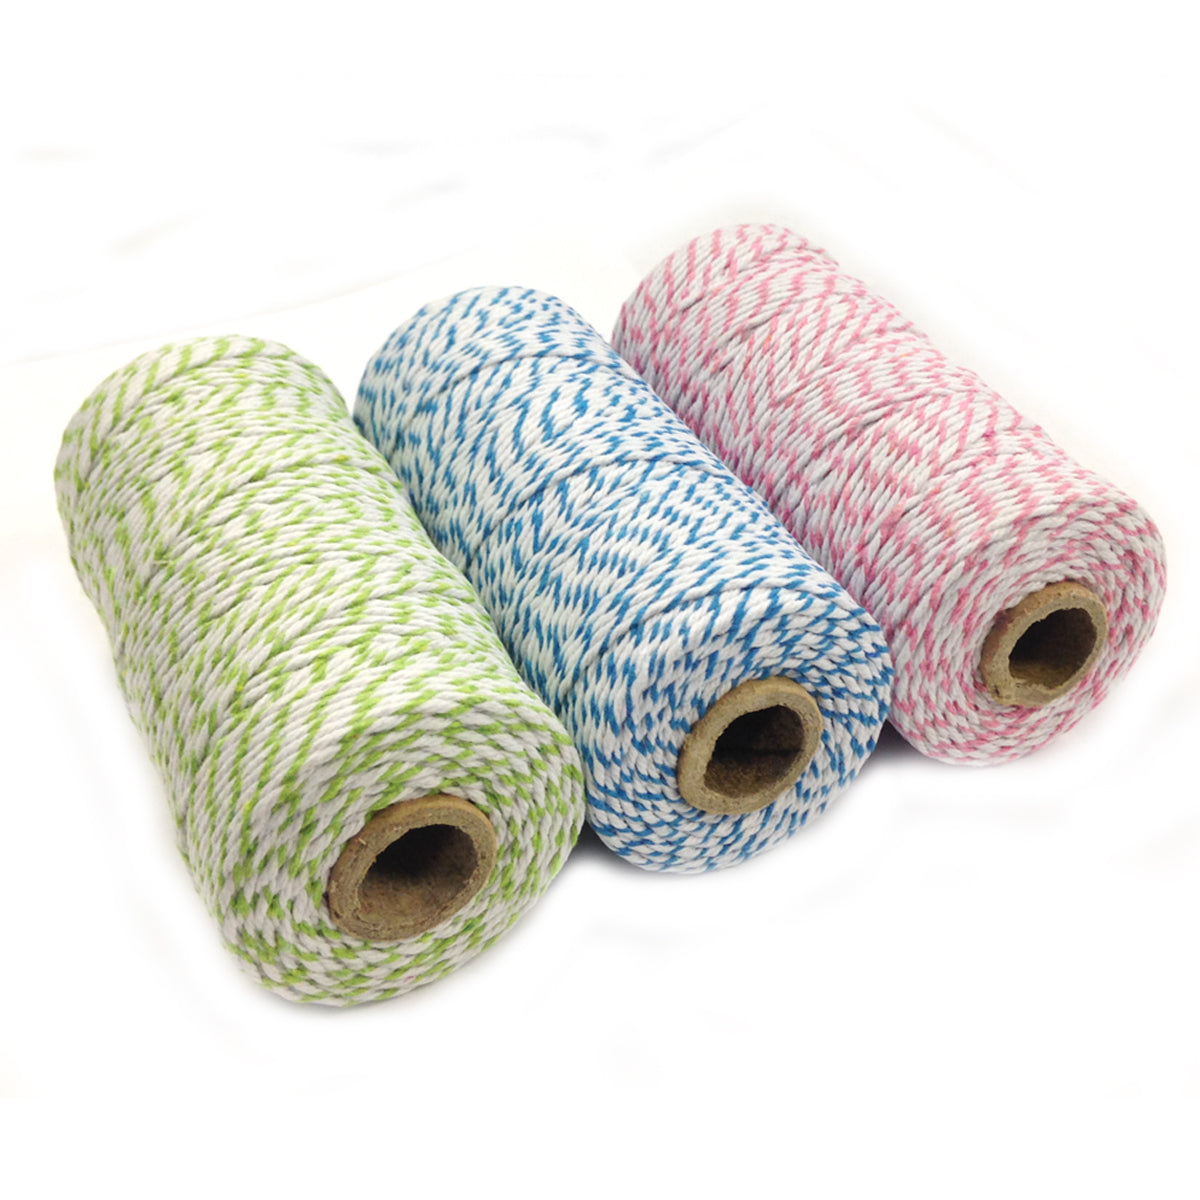 Wrapables Cotton Baker's Twine 12ply 330 Yards (Set of 3 Spools x 110 Yards)